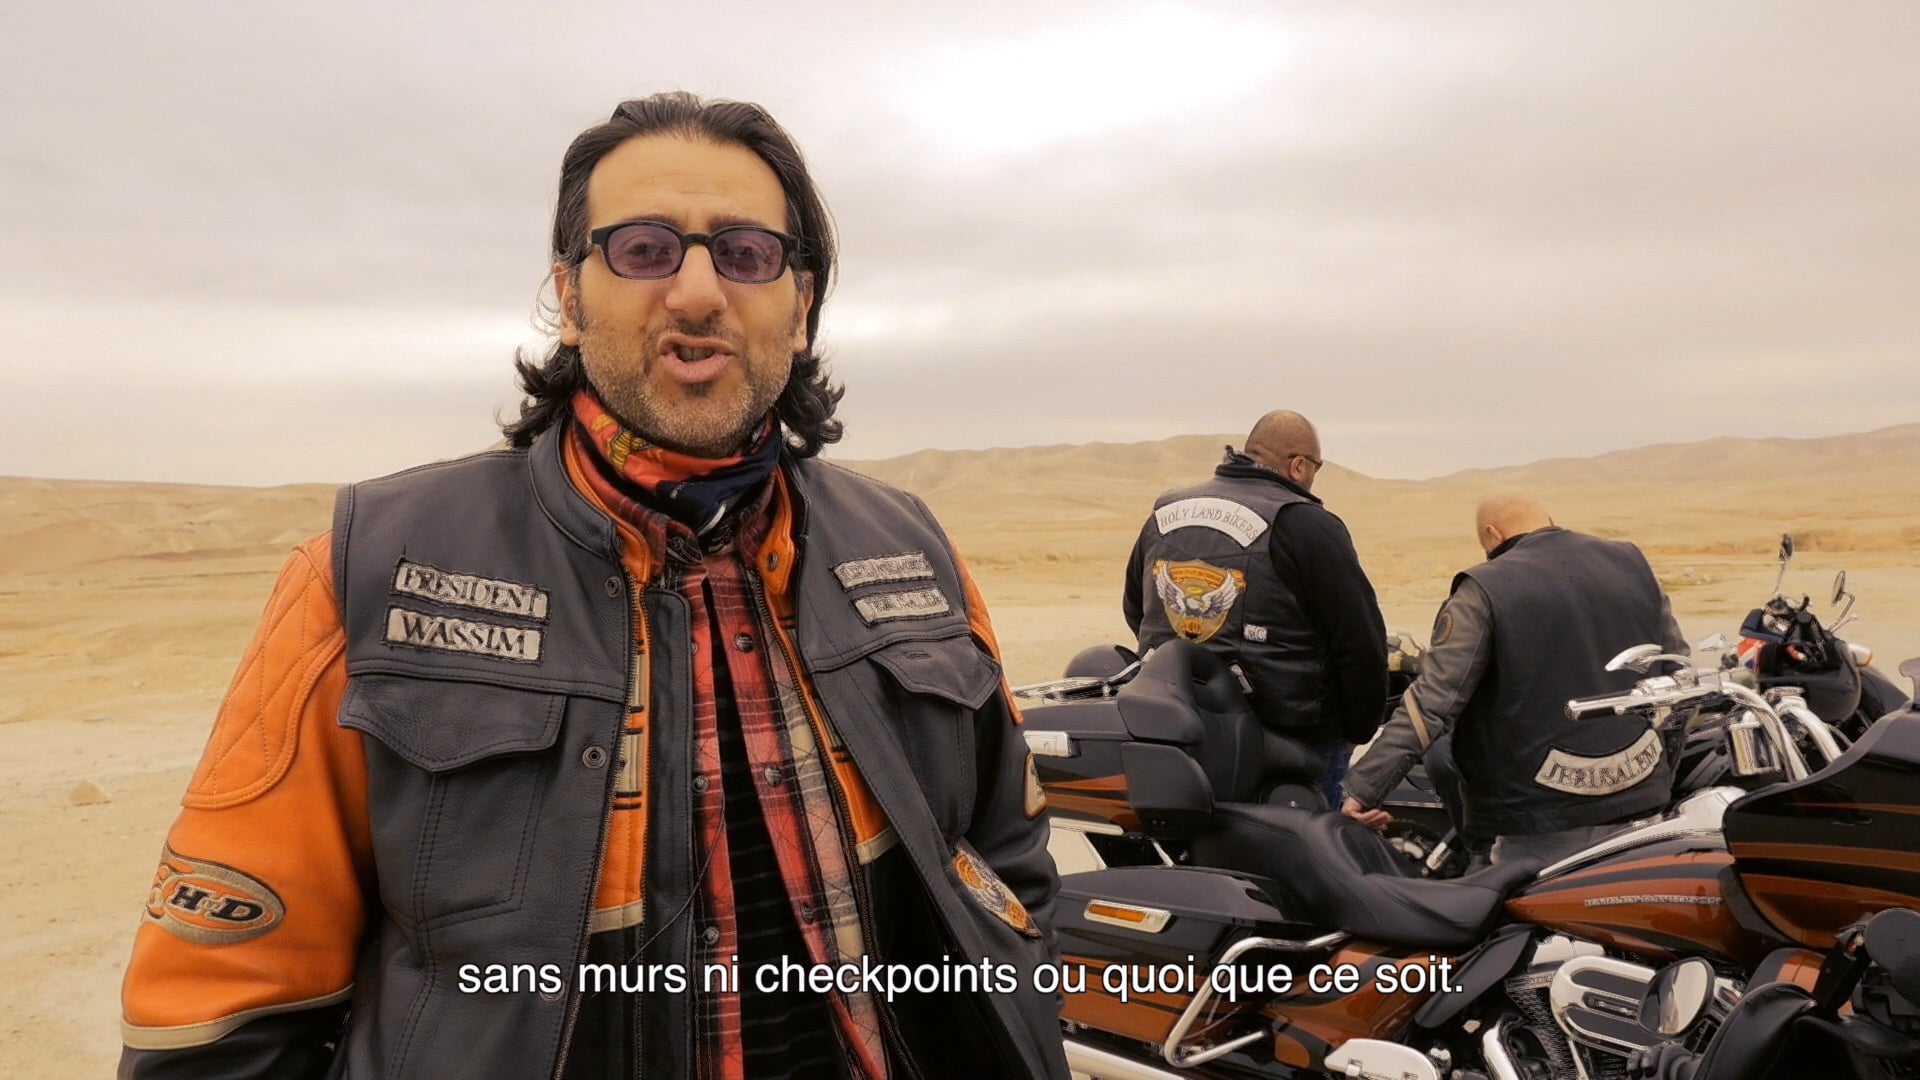 Holy land bikers